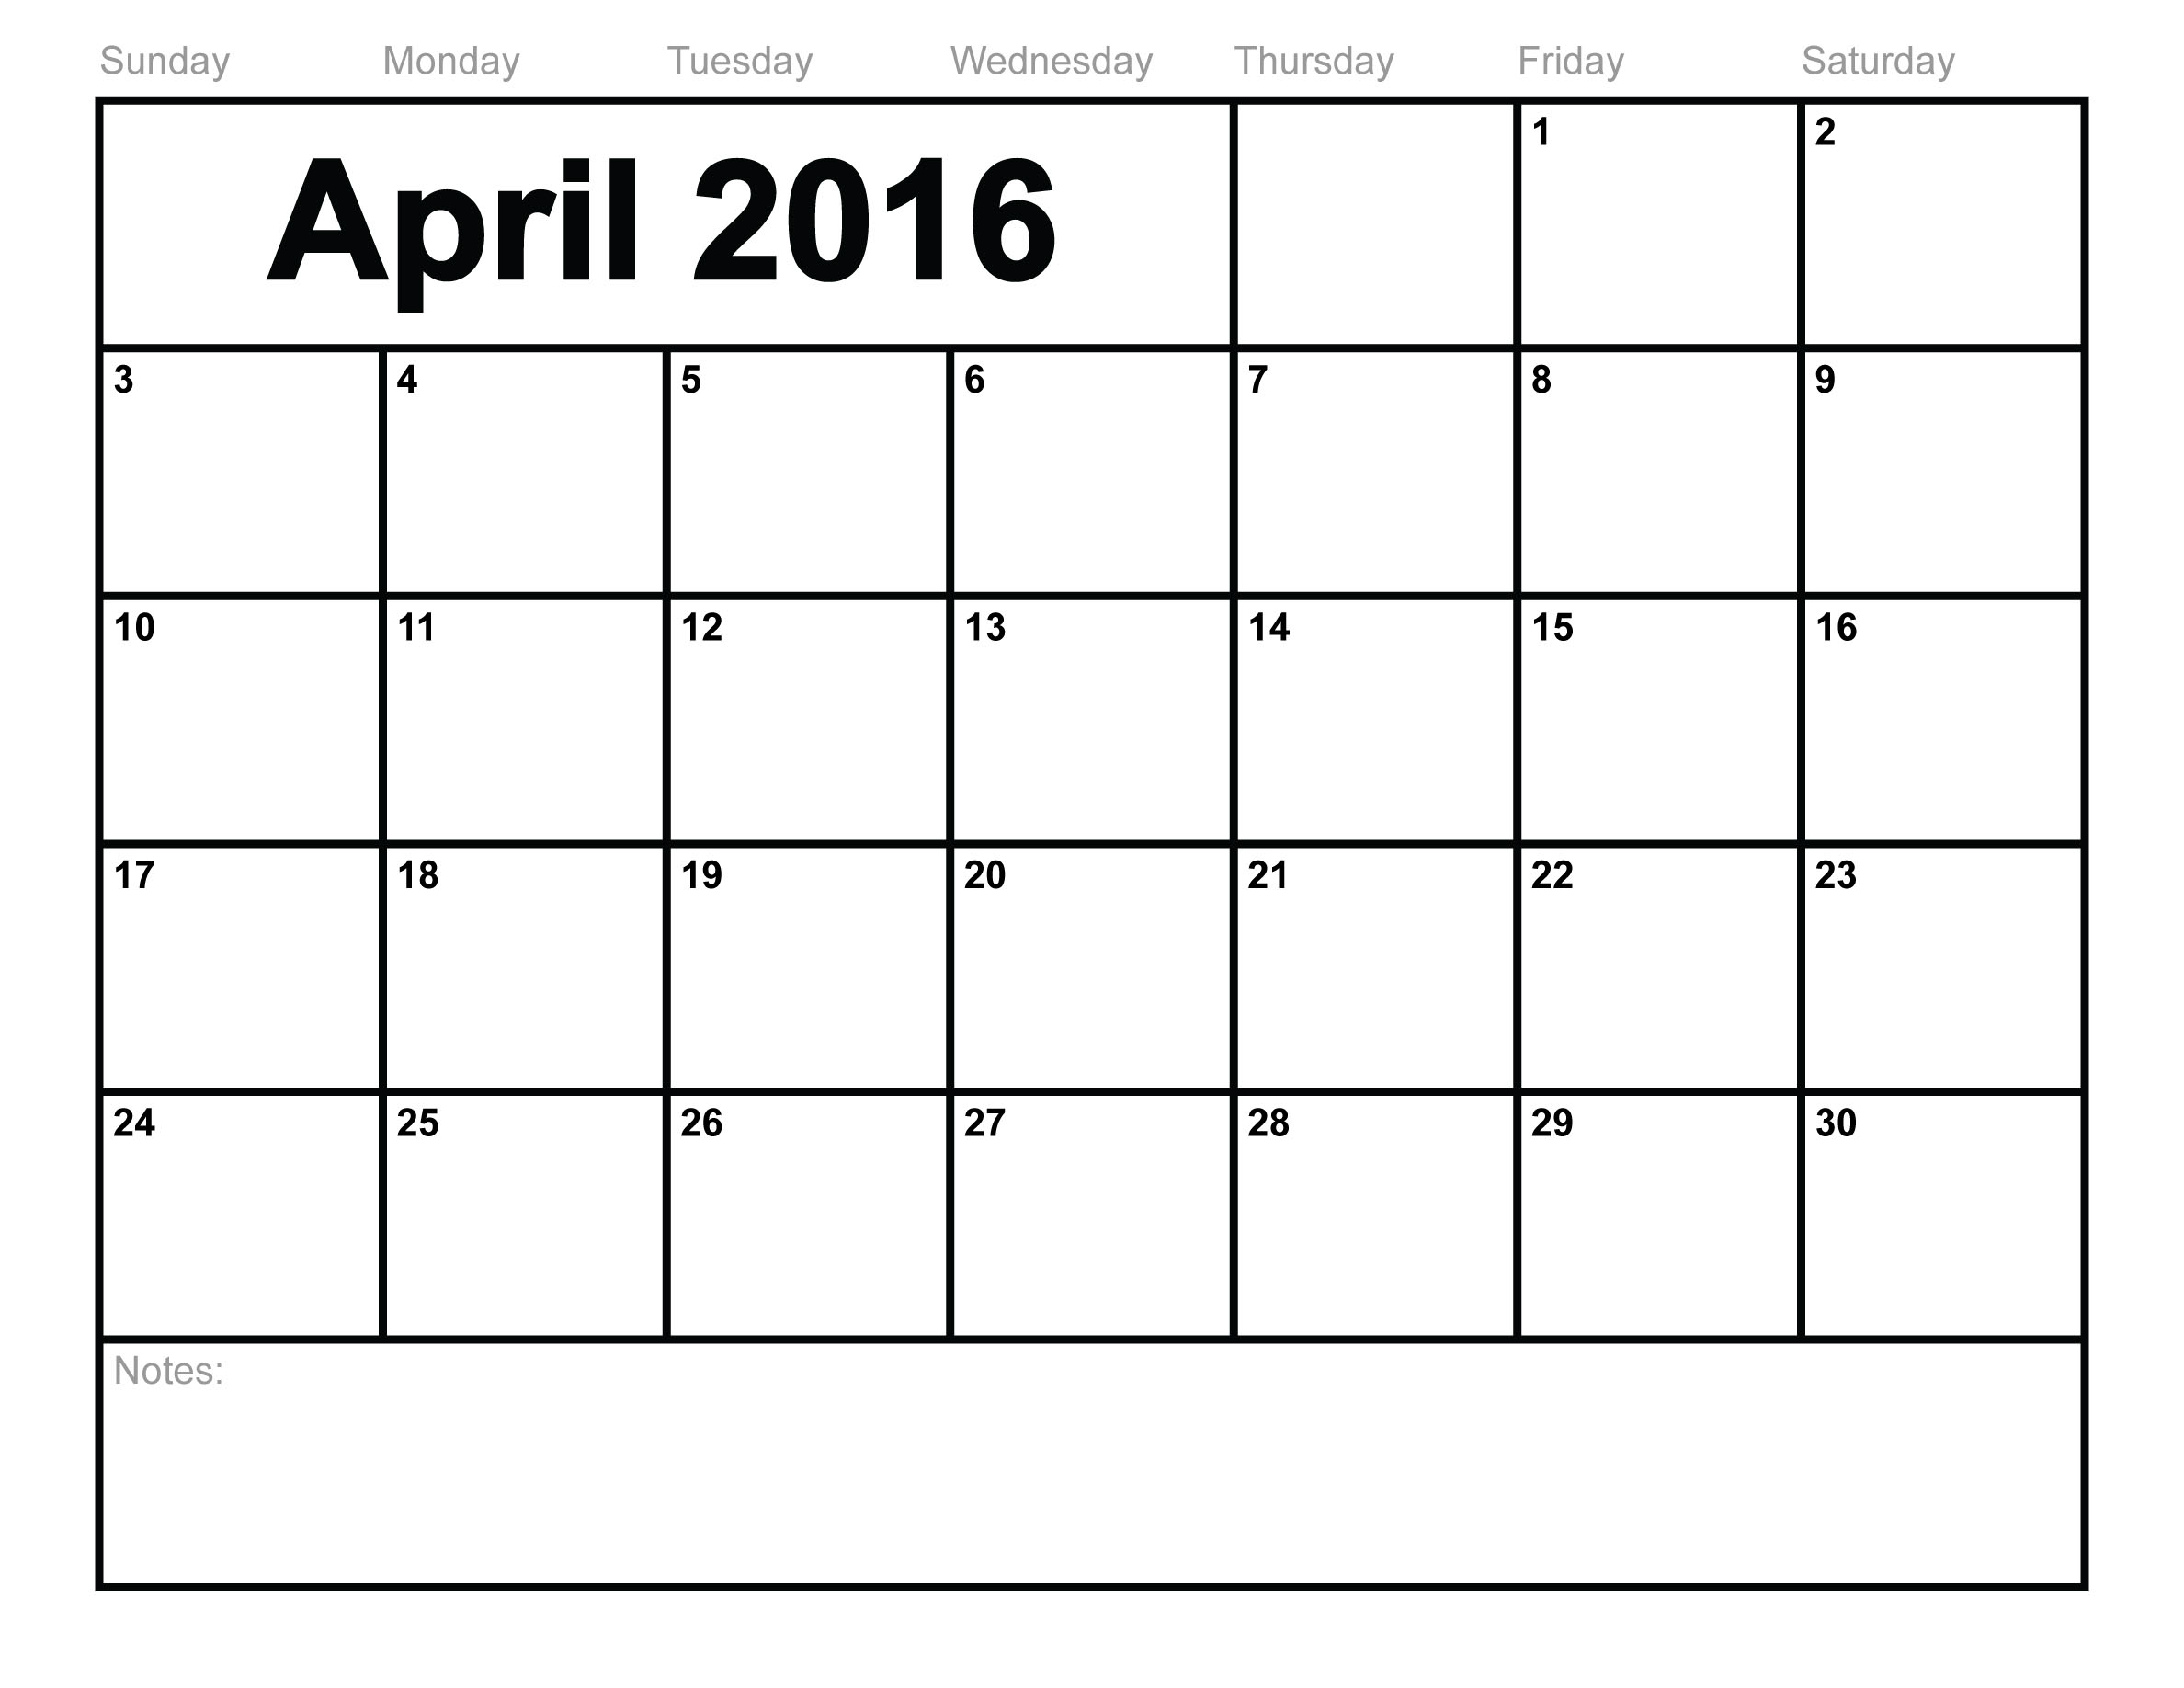 April 2016 Calendar Printable | Printable Calendar Templates